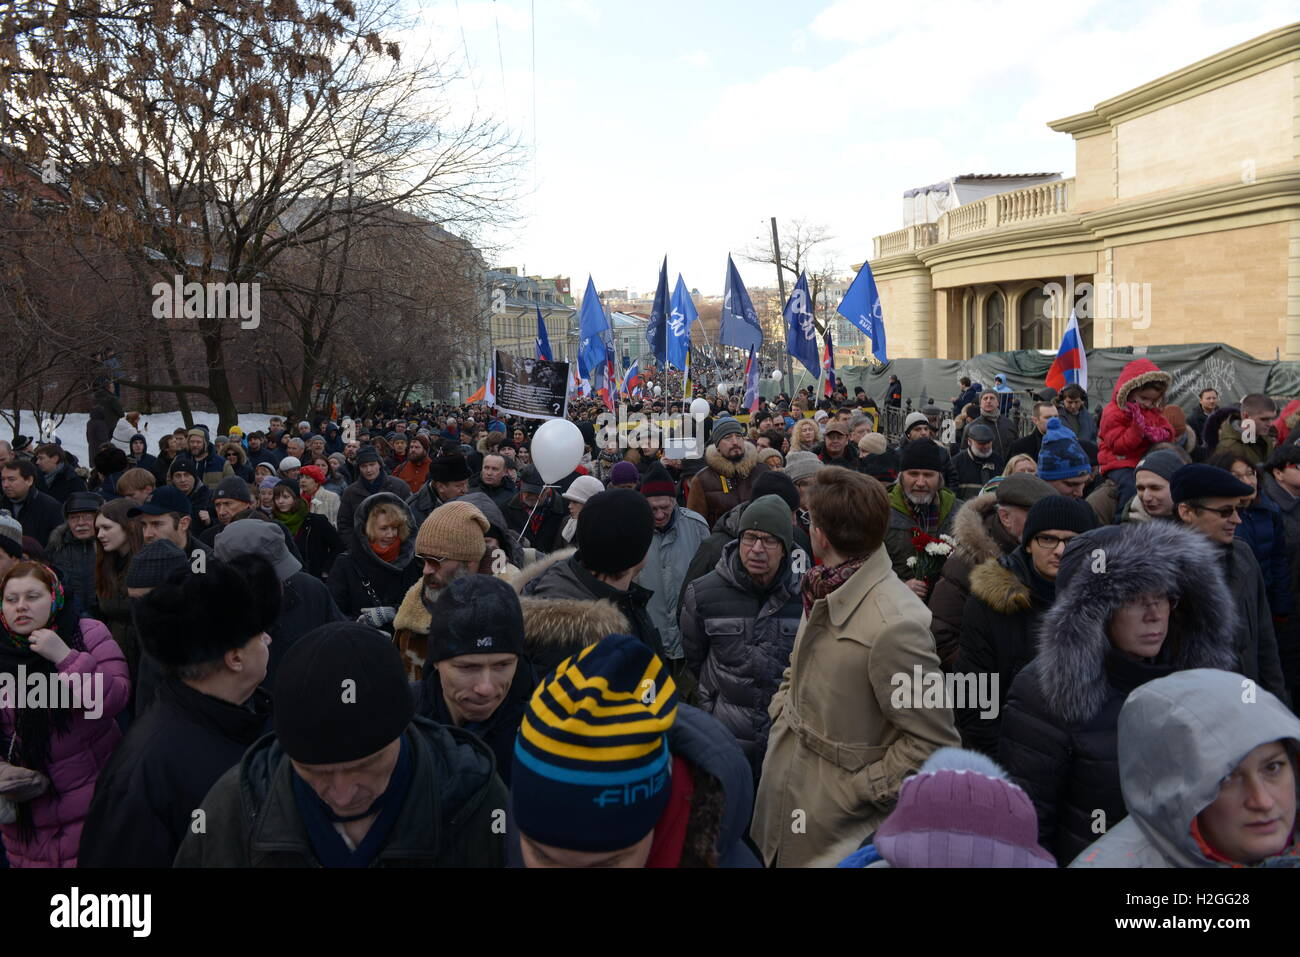 Opposition march in Moscow. - Stock Image